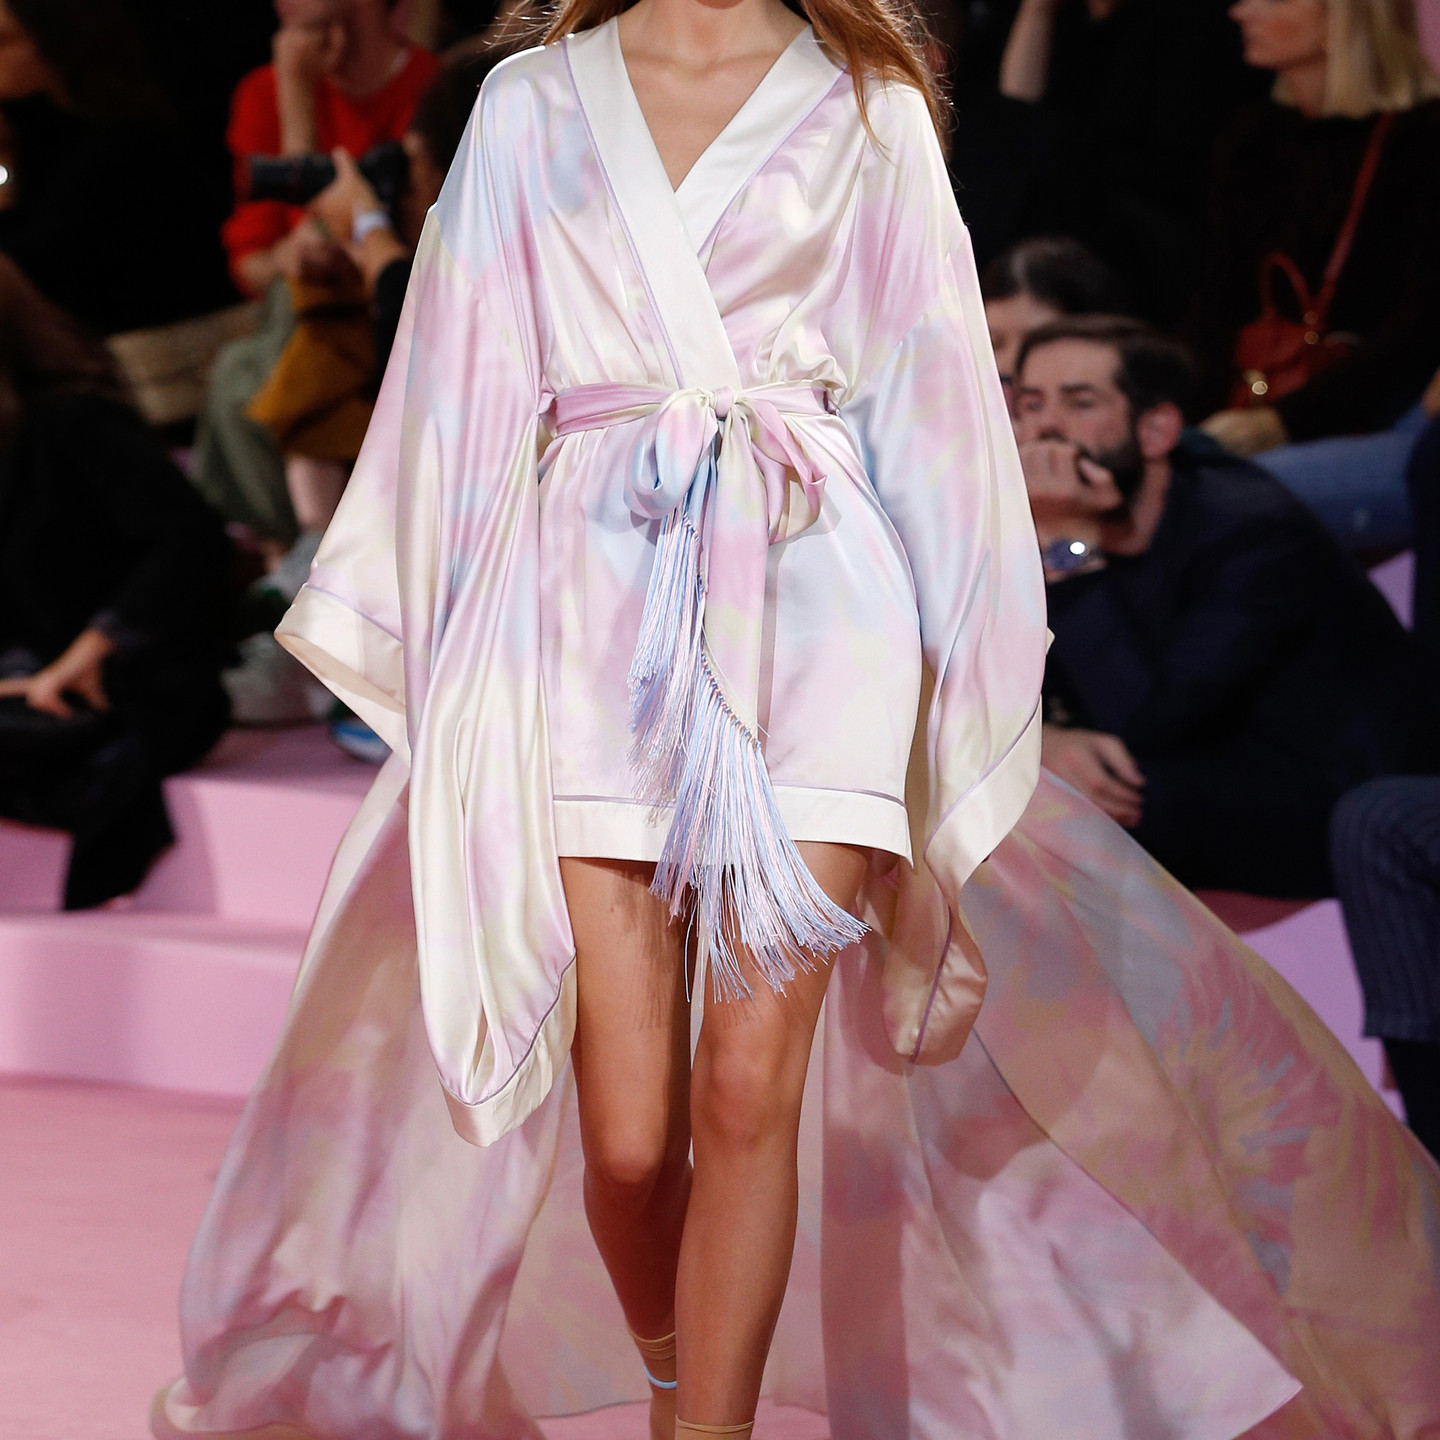 RALPH & RUSSO SPRING/SUMMER 2020 RTW COLLECTION